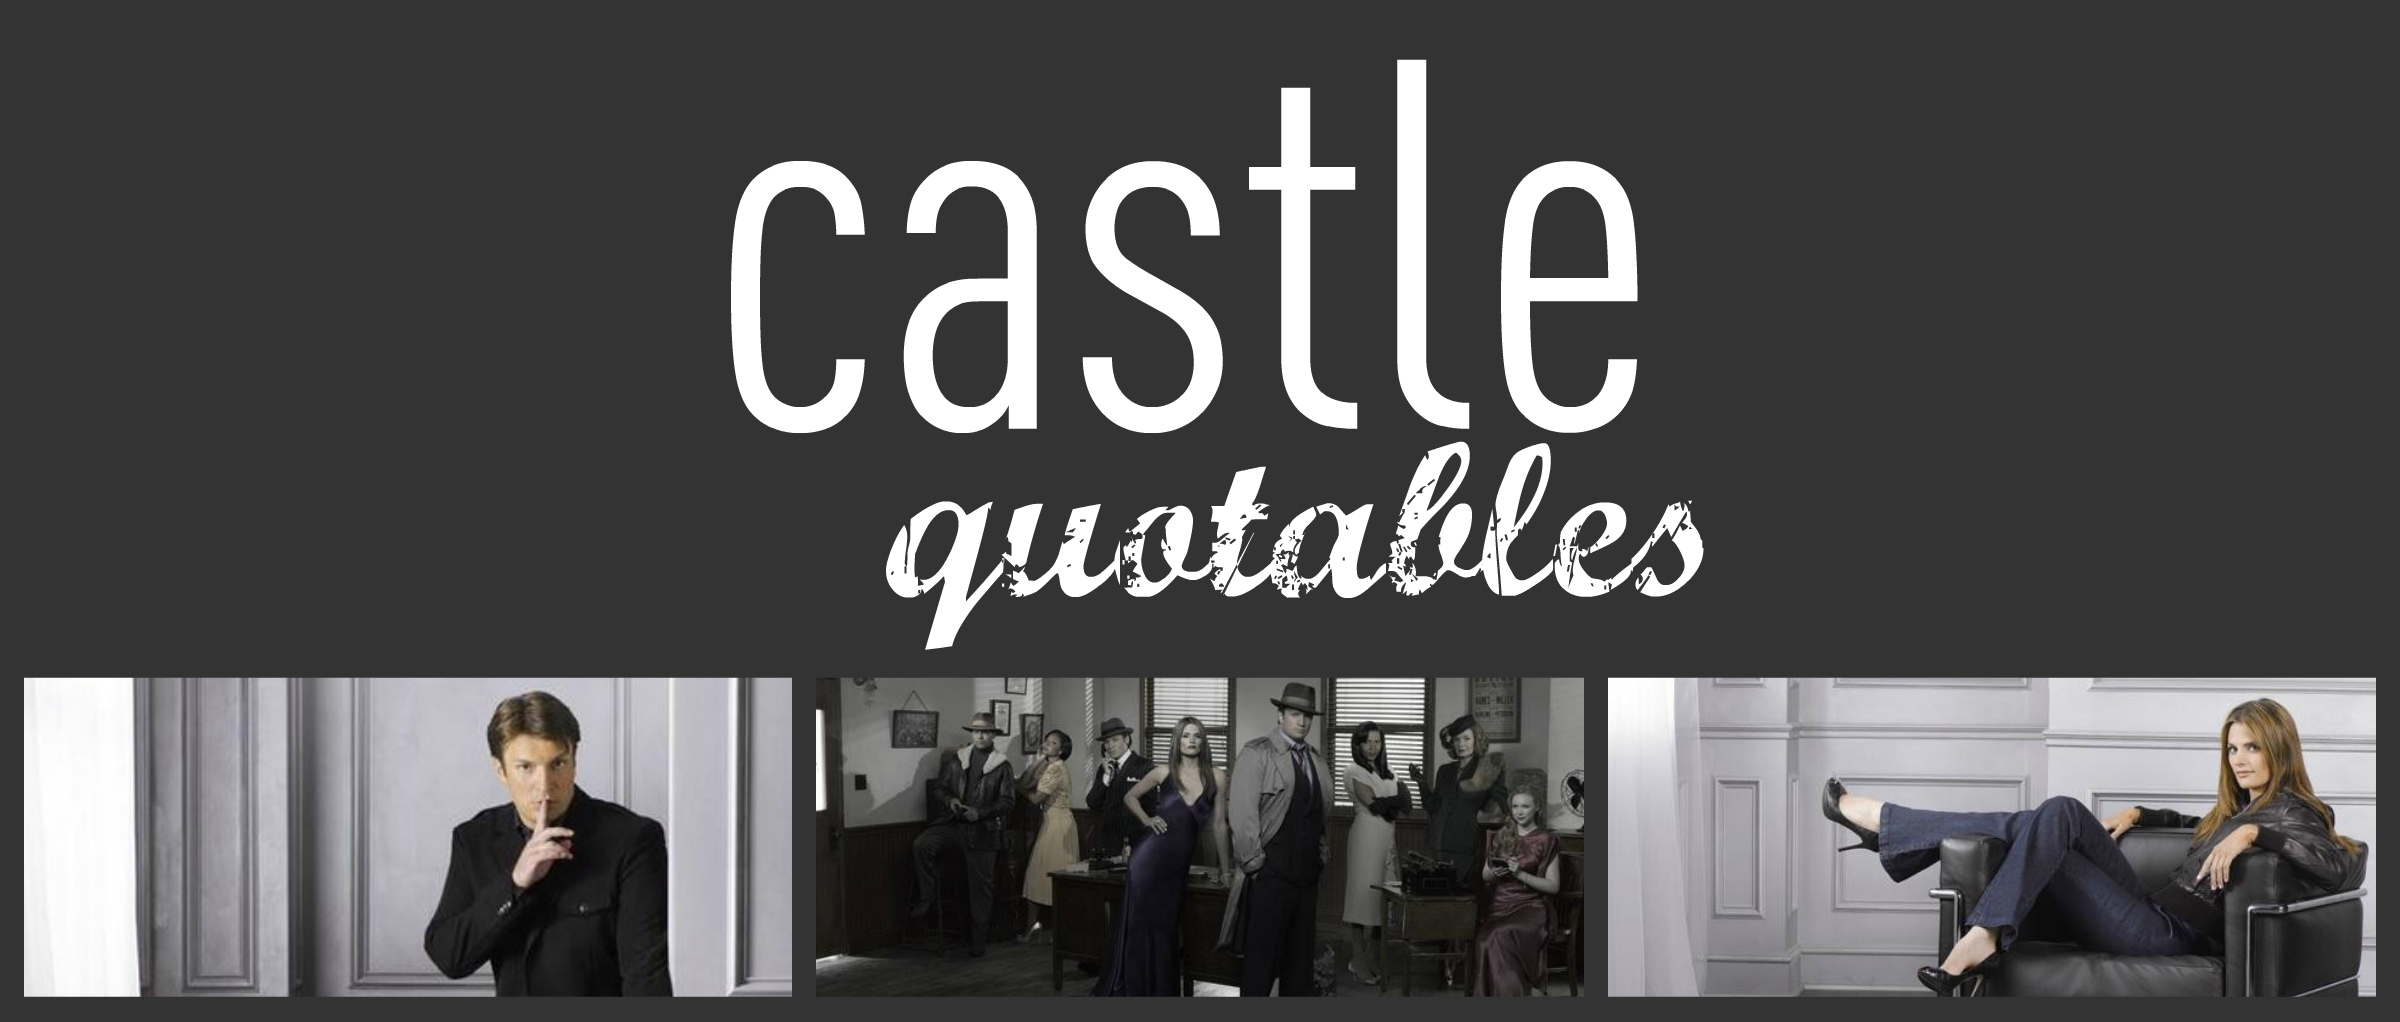 Quotes About Castles Interesting Famous Quotes About 'castle'  Sualci Quotes